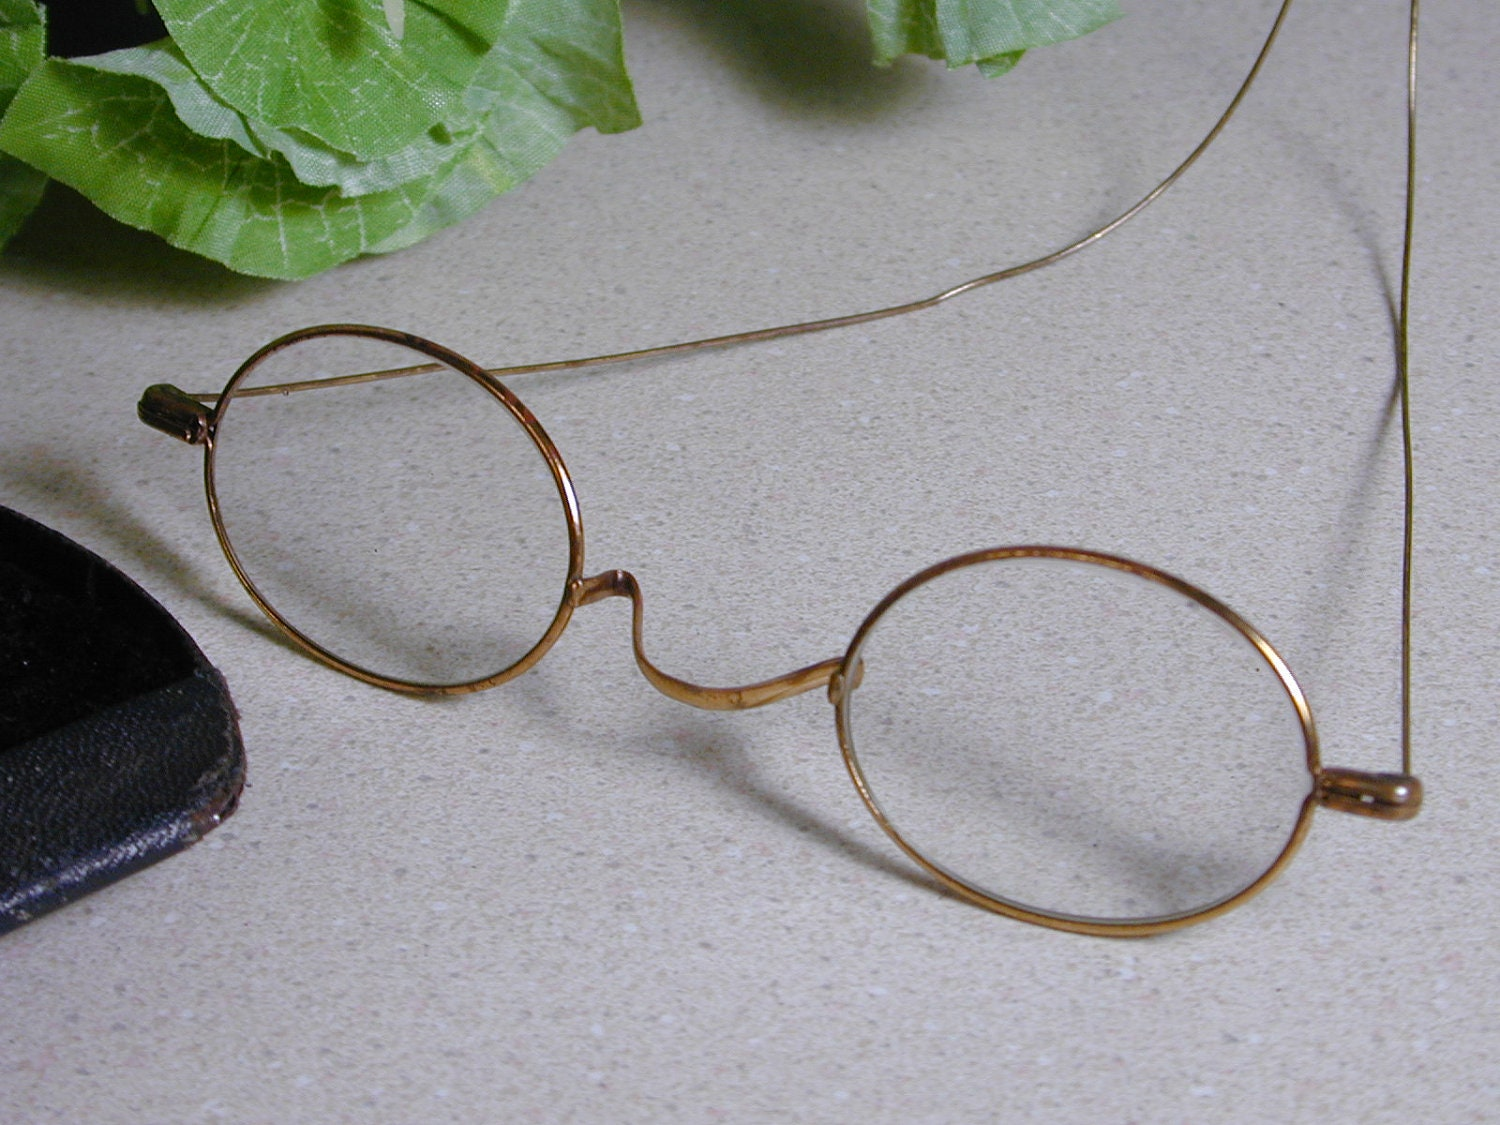 Wire Eyeglass Frame : Antique Wire Frame Eyeglasses with Case